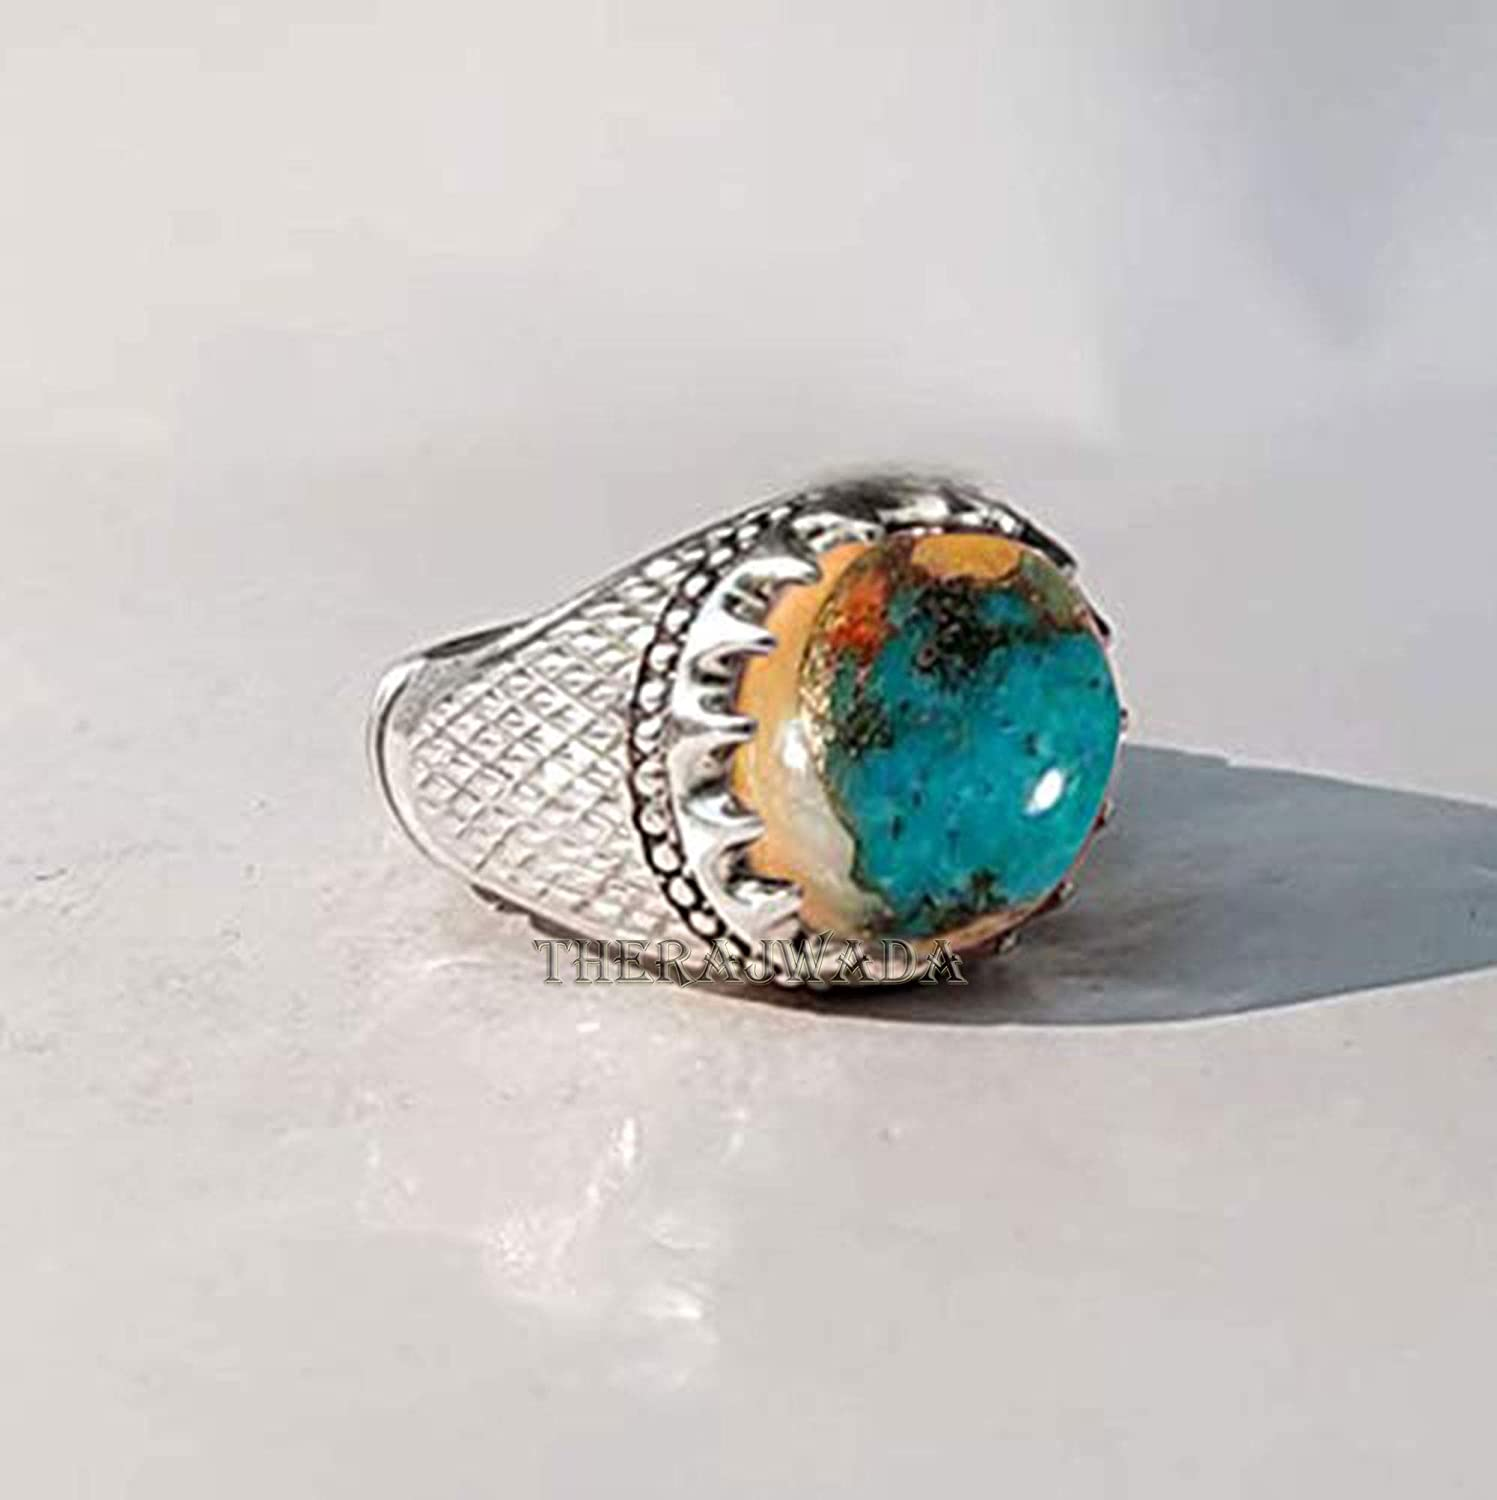 Metaphysical Healing Gemstone Ring Round Smooth Turquoise Ring December Birthstone Natural Copper Oyster Turquoise Ring Turquoise Ring Solid 925 Sterling Silver Ring Birthday Gift for Mens